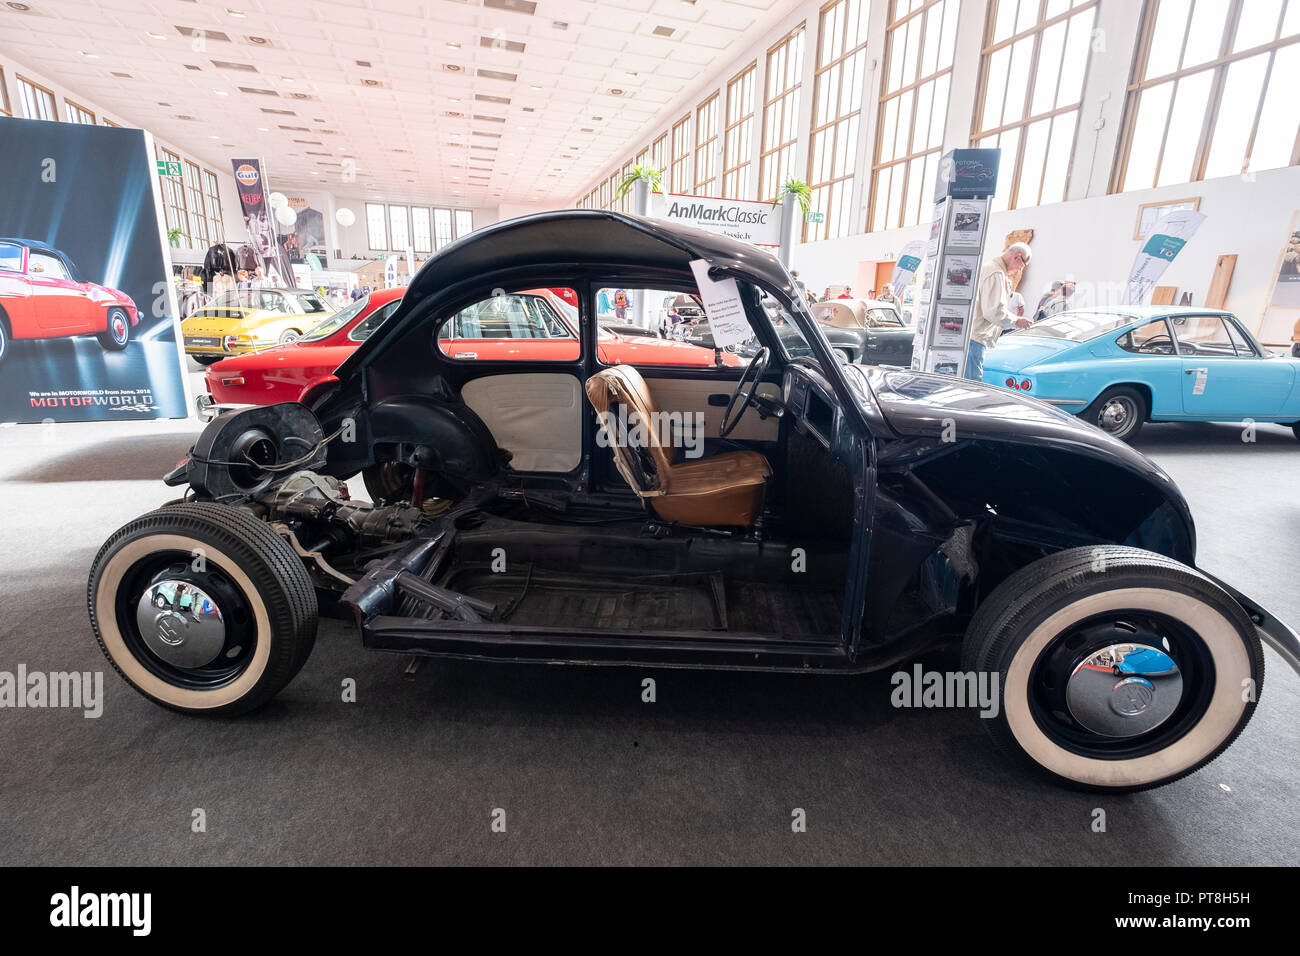 Berlin, Germany. 06th Oct, 2018. A Moto Classic trade show, oldtimers. Credit: Beata Siewicz/Pacific Press/Alamy Live News - Stock Image